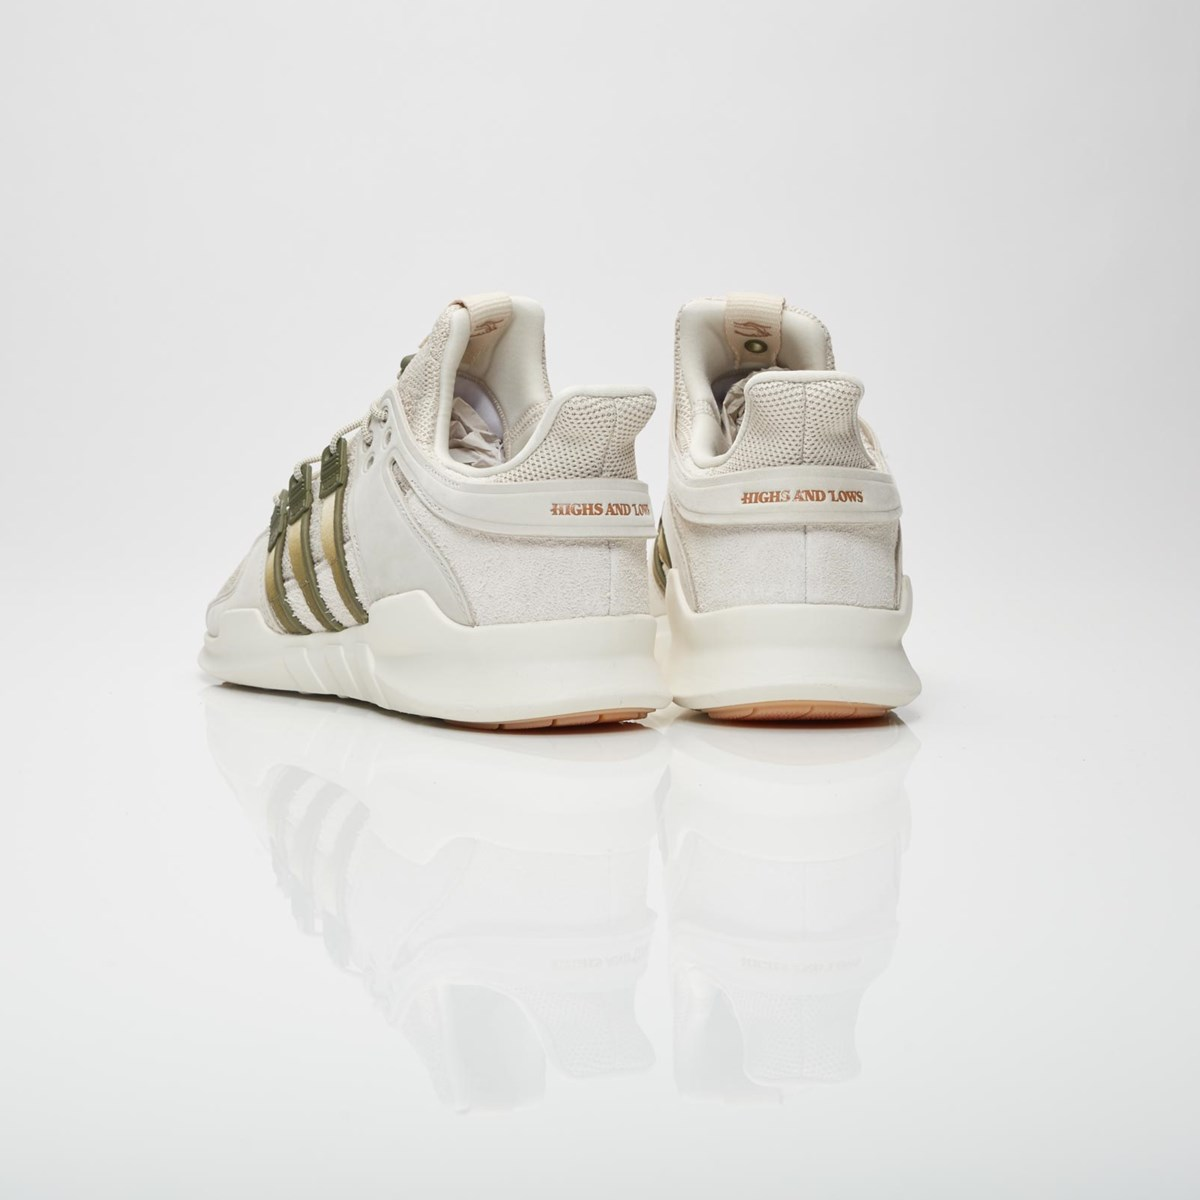 new style c13b0 975cf adidas EQT Support ADV  HAL - Cm7873 - Sneakersnstuff  sneakers   streetwear online since 1999